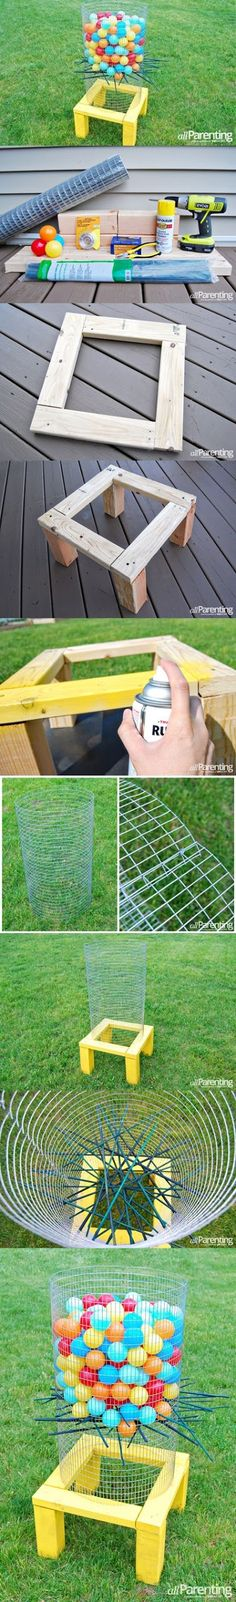 DIY BACKYARD KER-PLUNK GAME [ | Garden